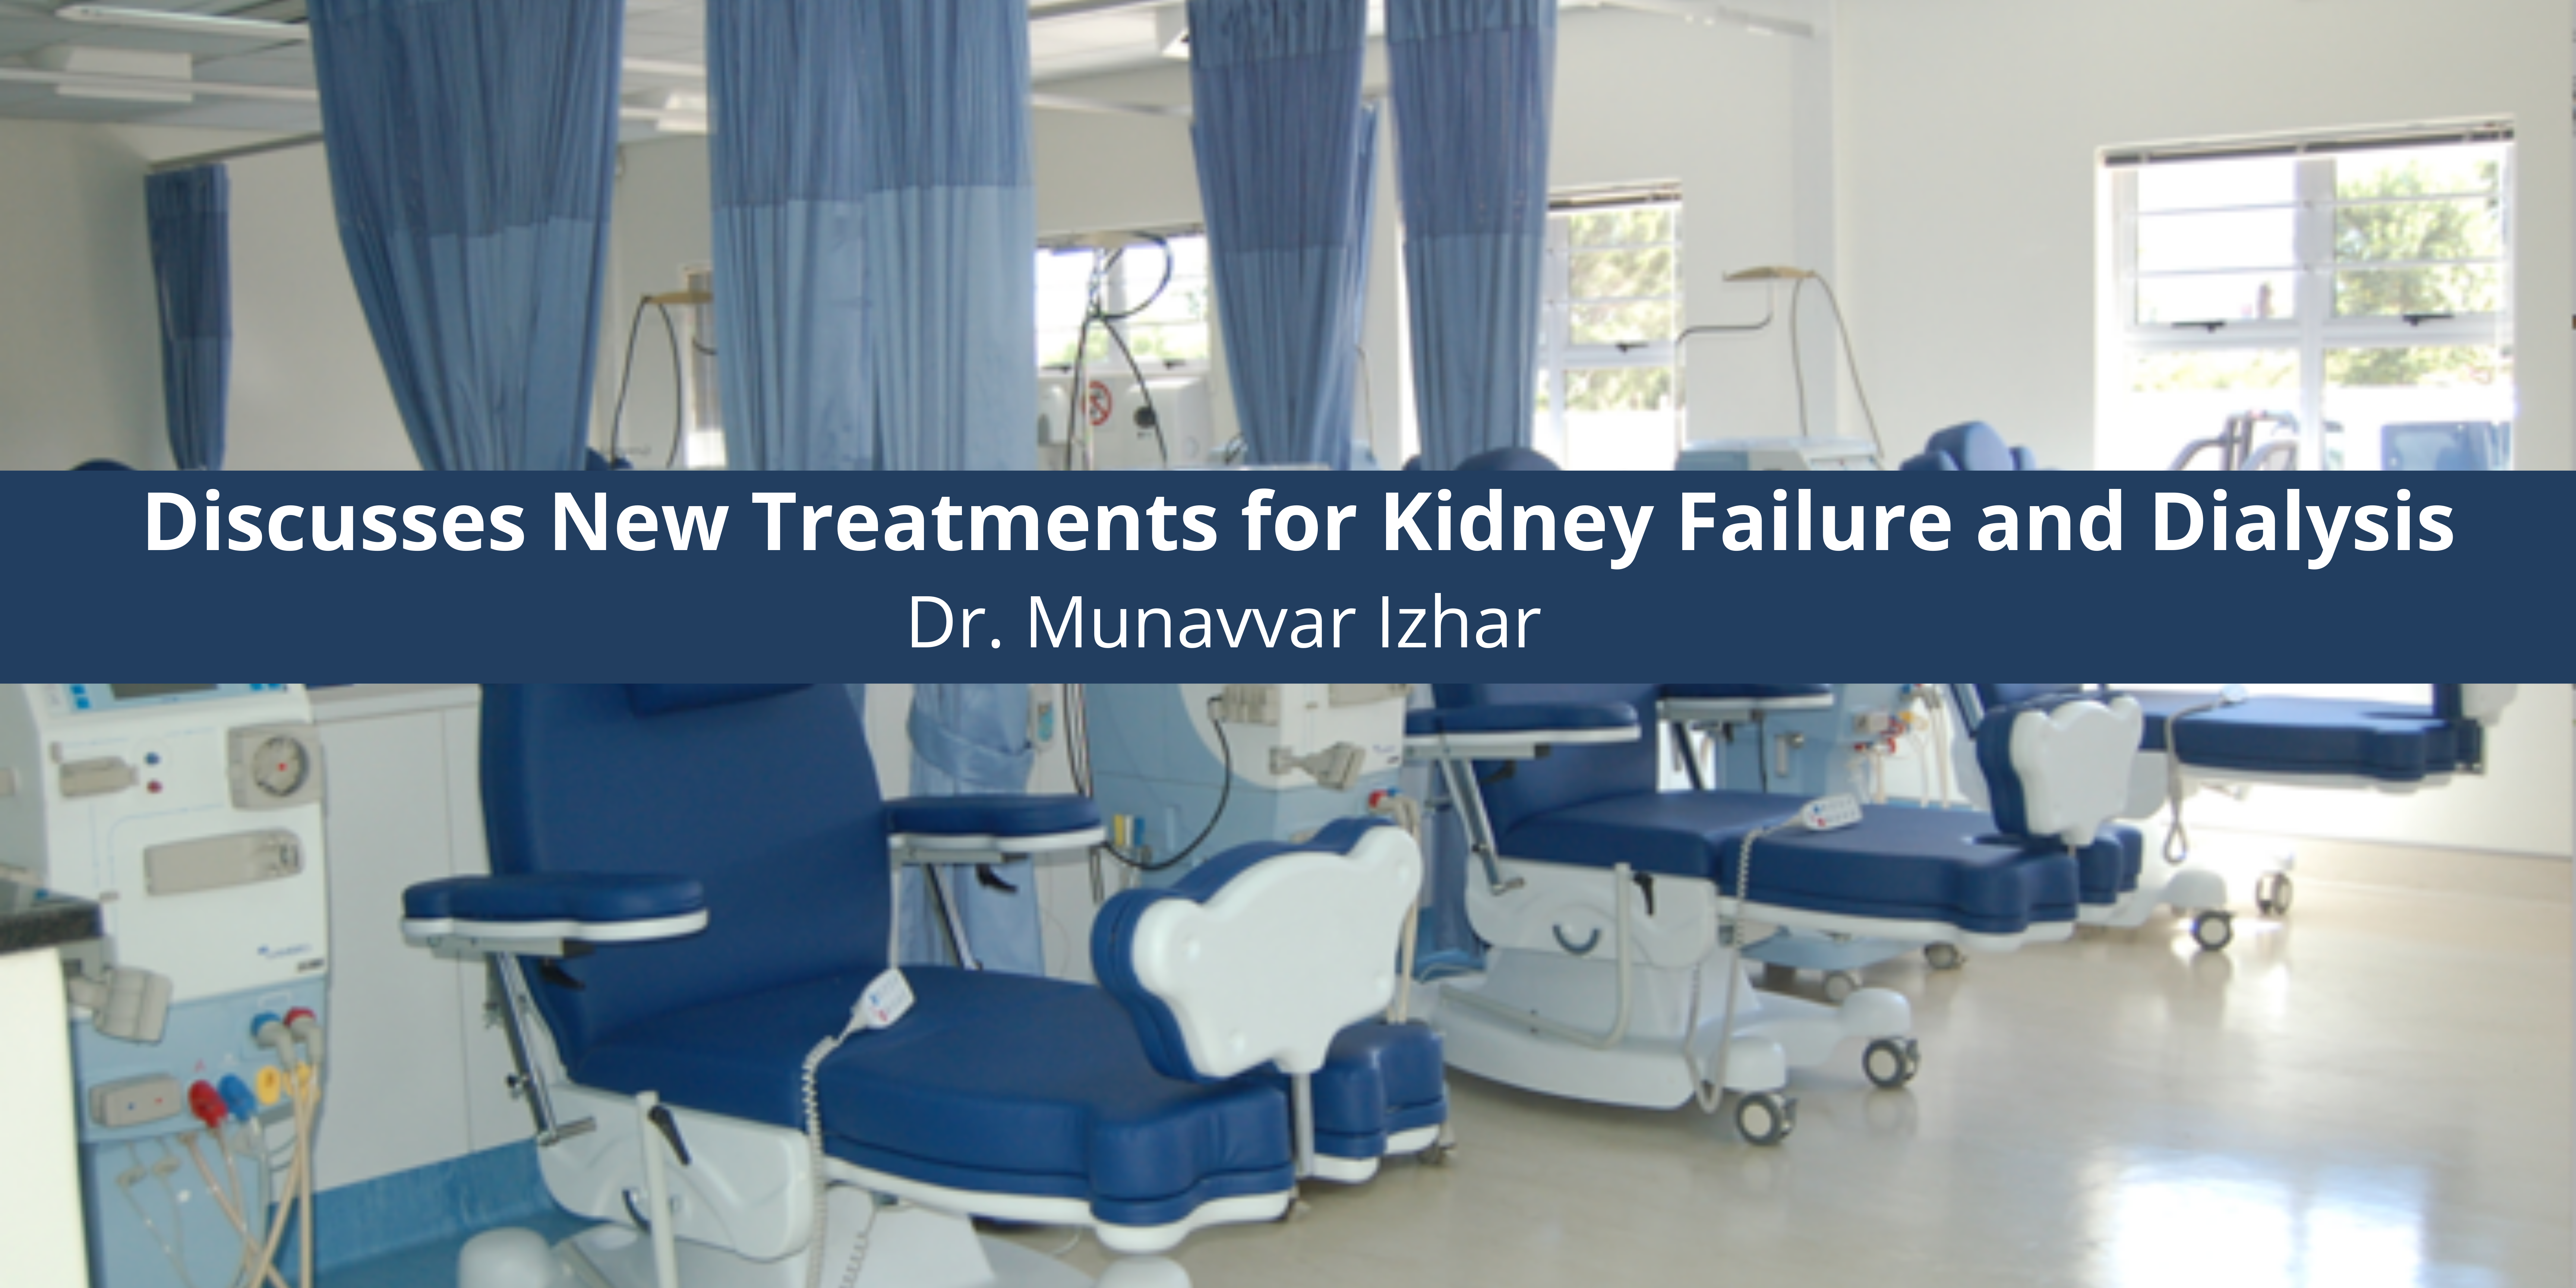 Discusses New Treatments for Kidney Failure and Dialysis